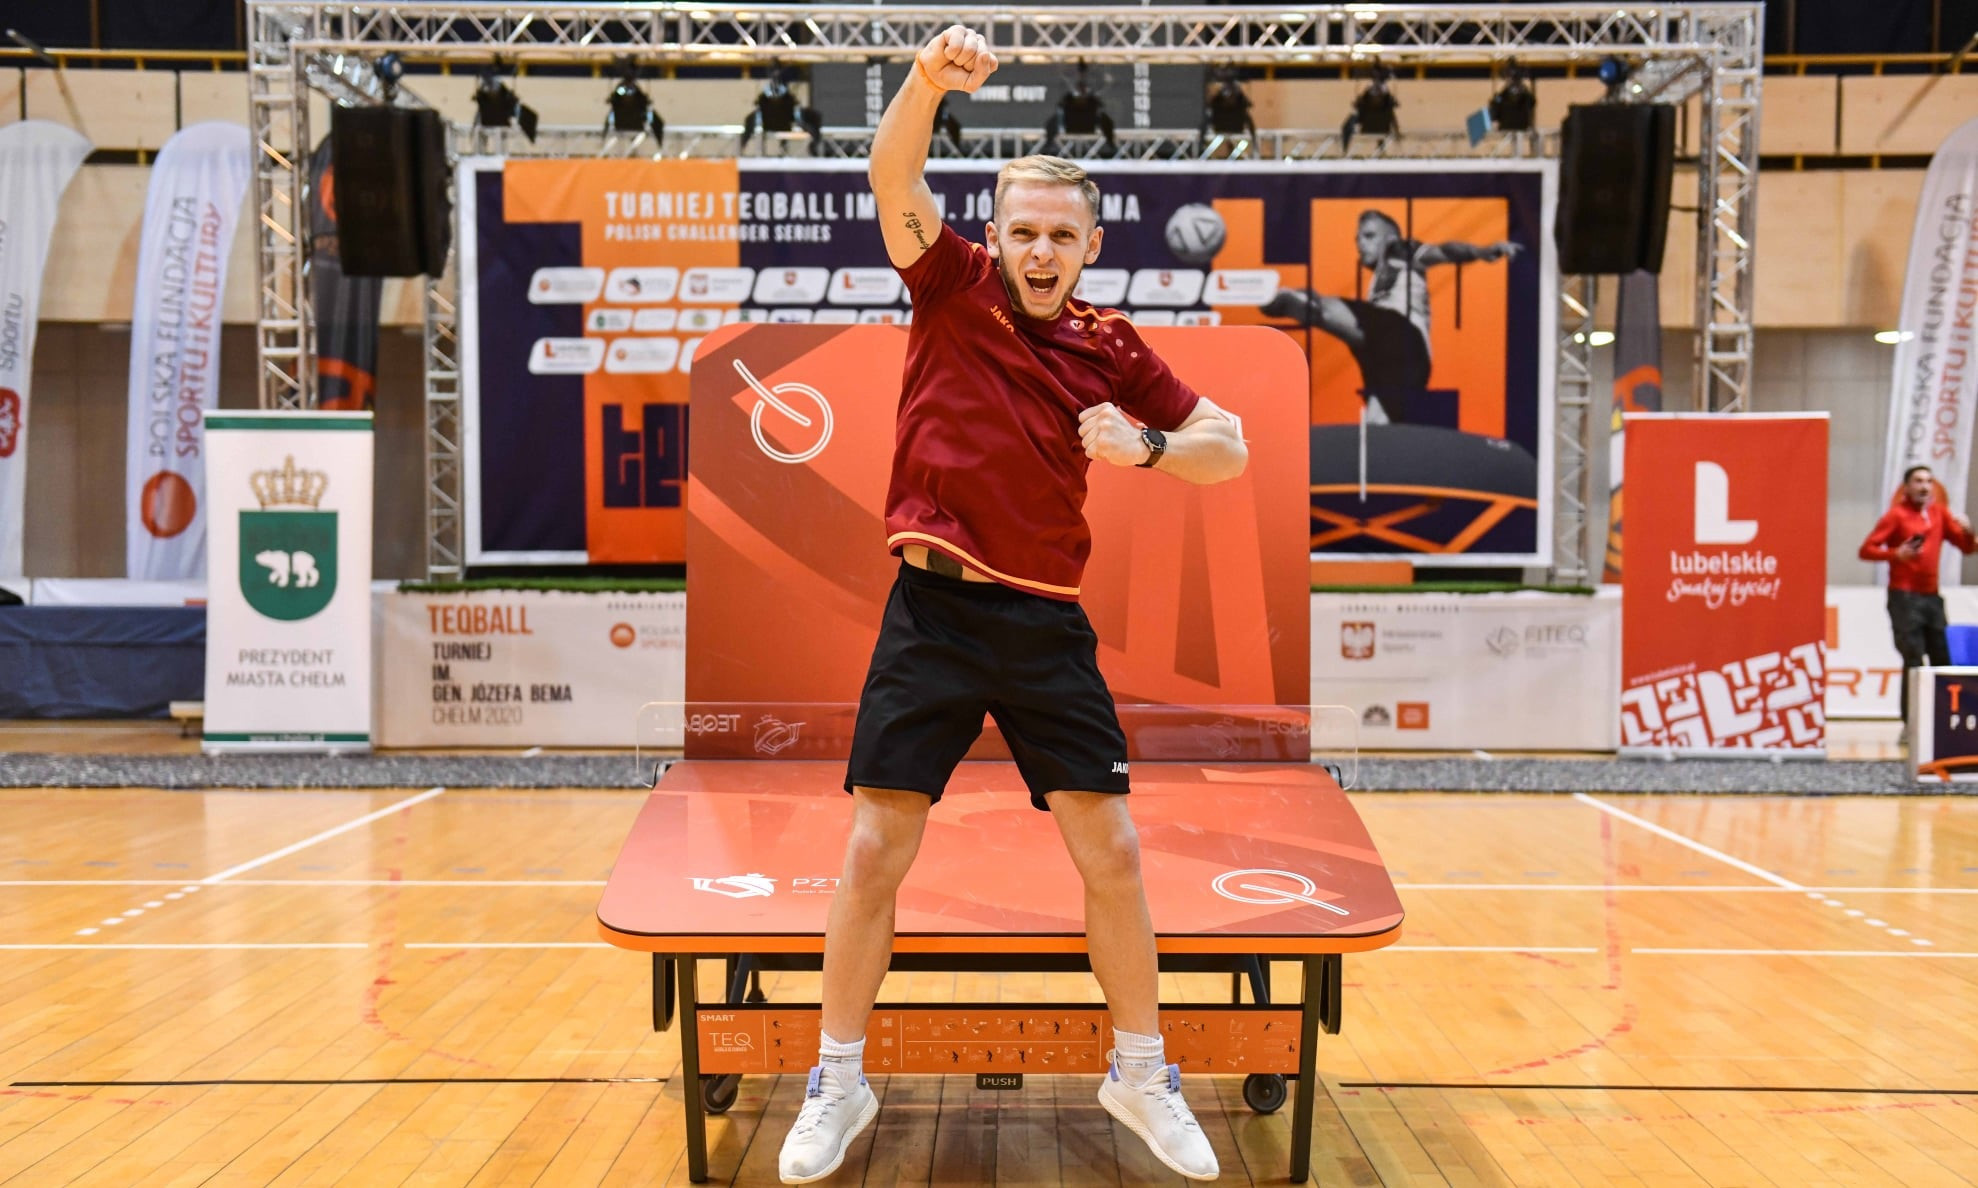 Duszak regains top spot in FITEQ singles world ranking